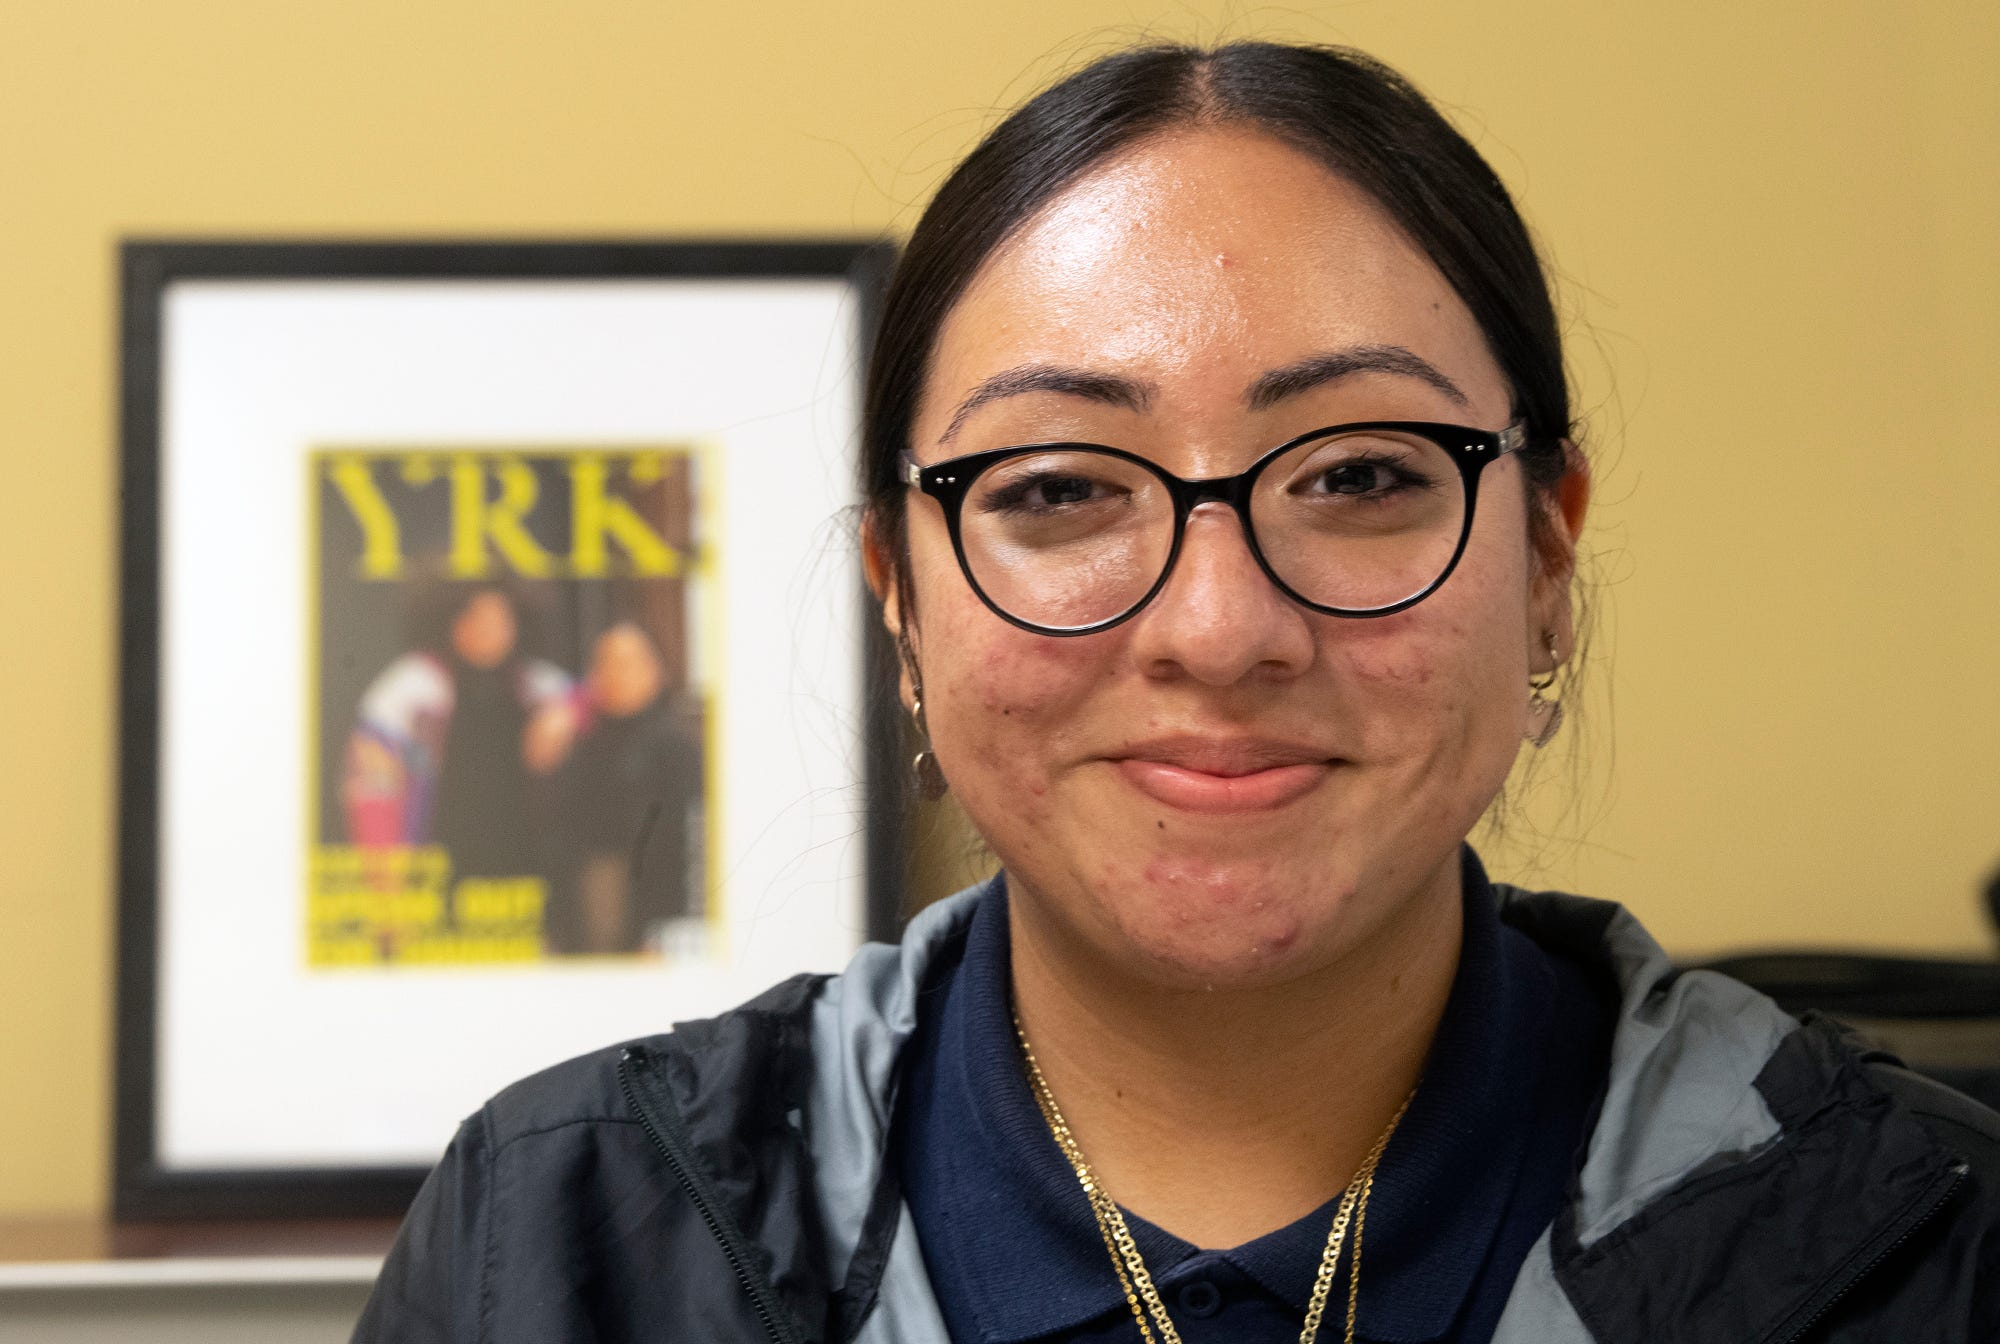 When Arlette Morales heads to college next year, she plans to continue to work for her own community, and fight for racial justice.